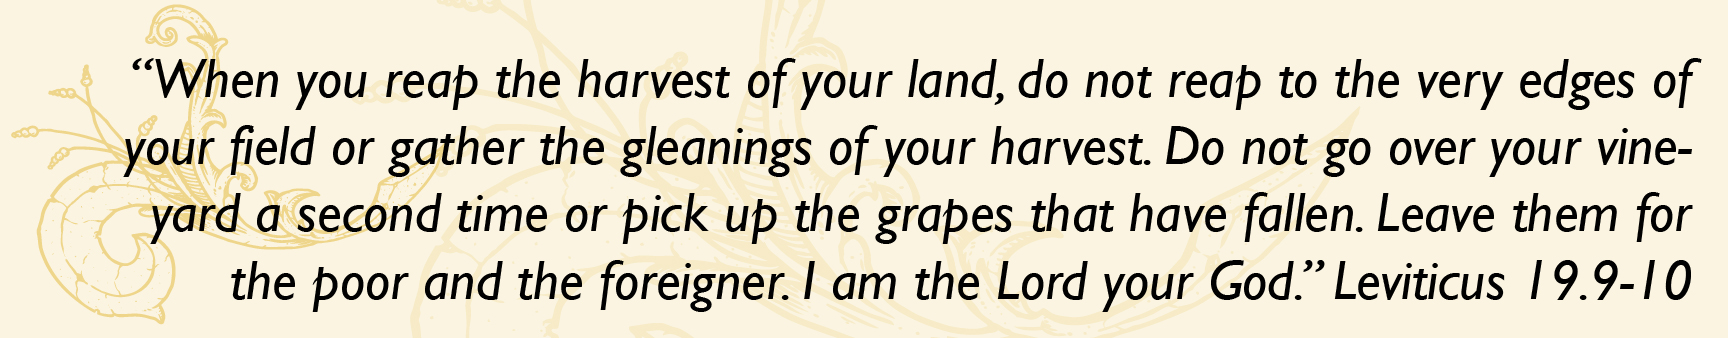 """When you reap the harvest of your land, do not reap to the very edges of your field or gather the gleanings of your harvest. Do not go over your vineyard a second time or pick up the grapes that have fallen. Leave them for the poor and the foreigner. I am the Lord your God."" Leviticus 19.9-10"